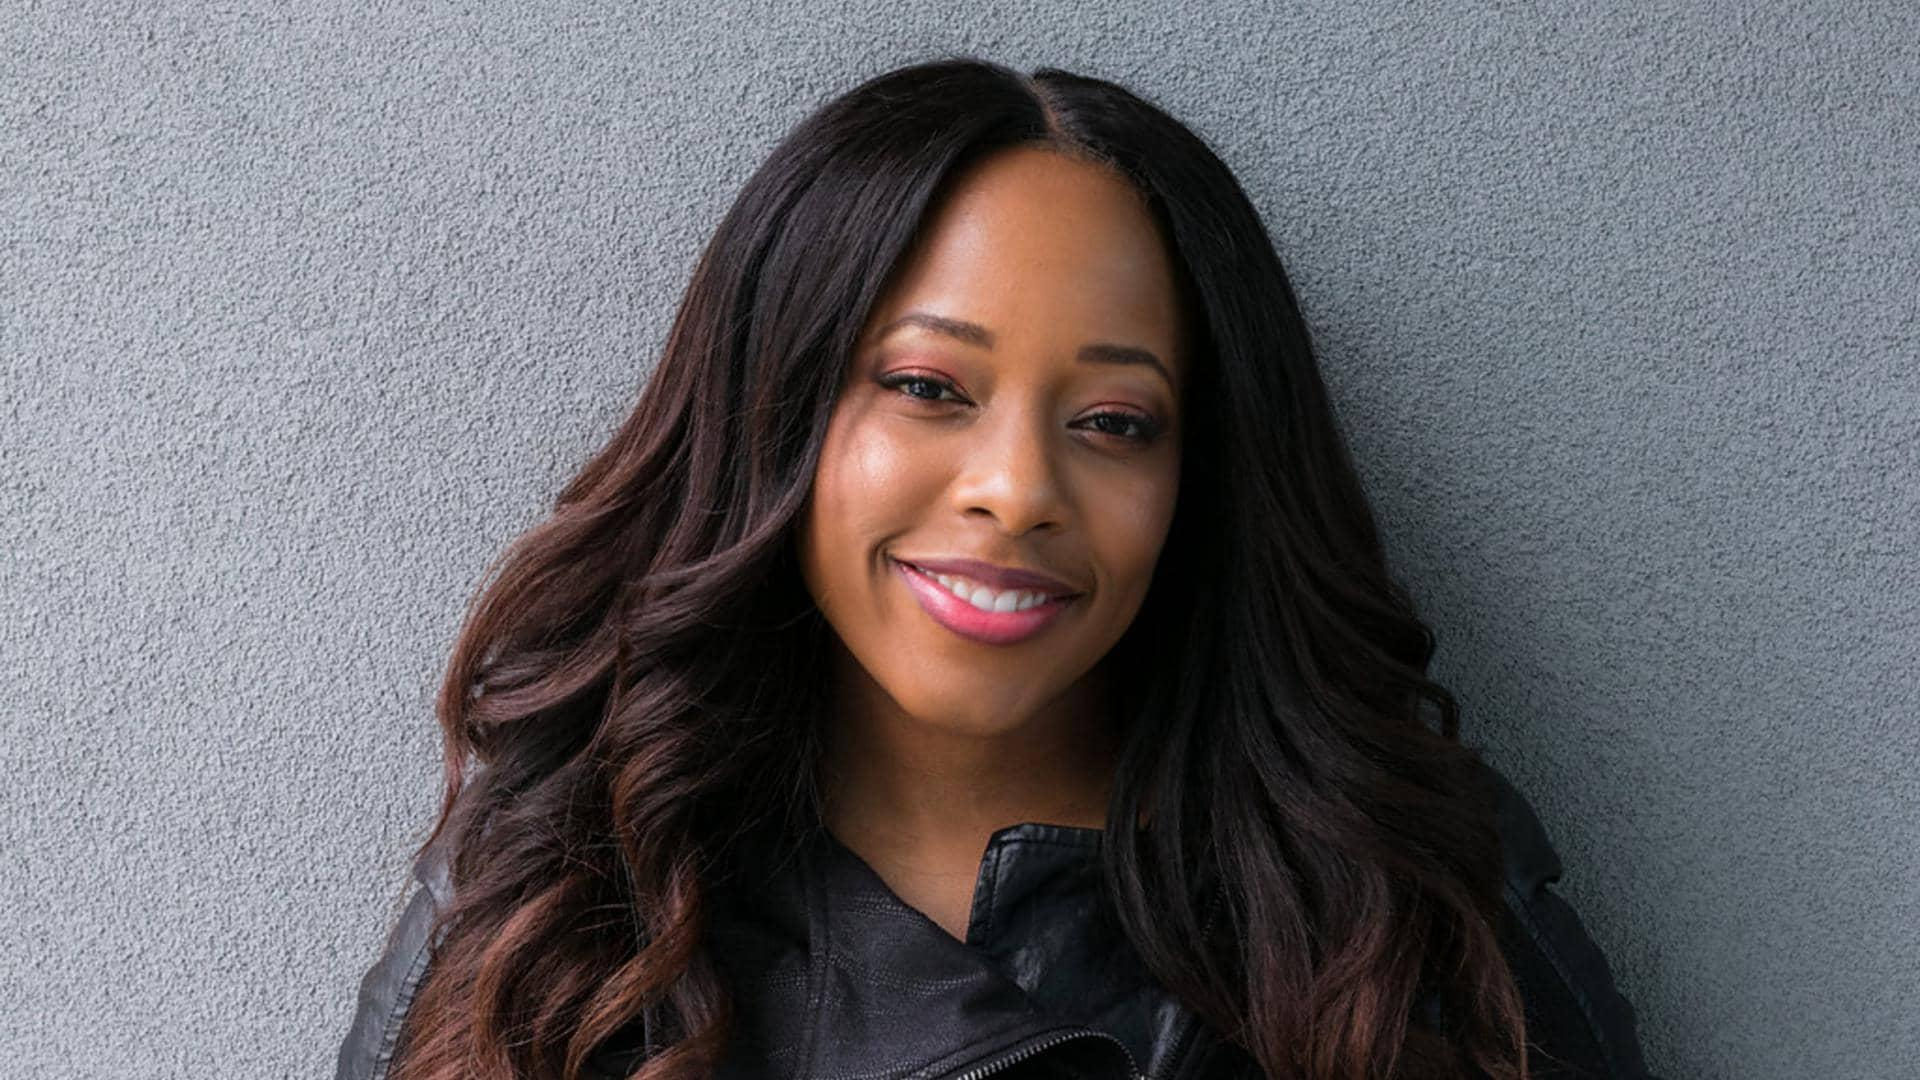 Dr. Roshawnna Novellus is the founder and CEO of EnrichHER, a financial technology platform with regulatory approval to help women secure funding.